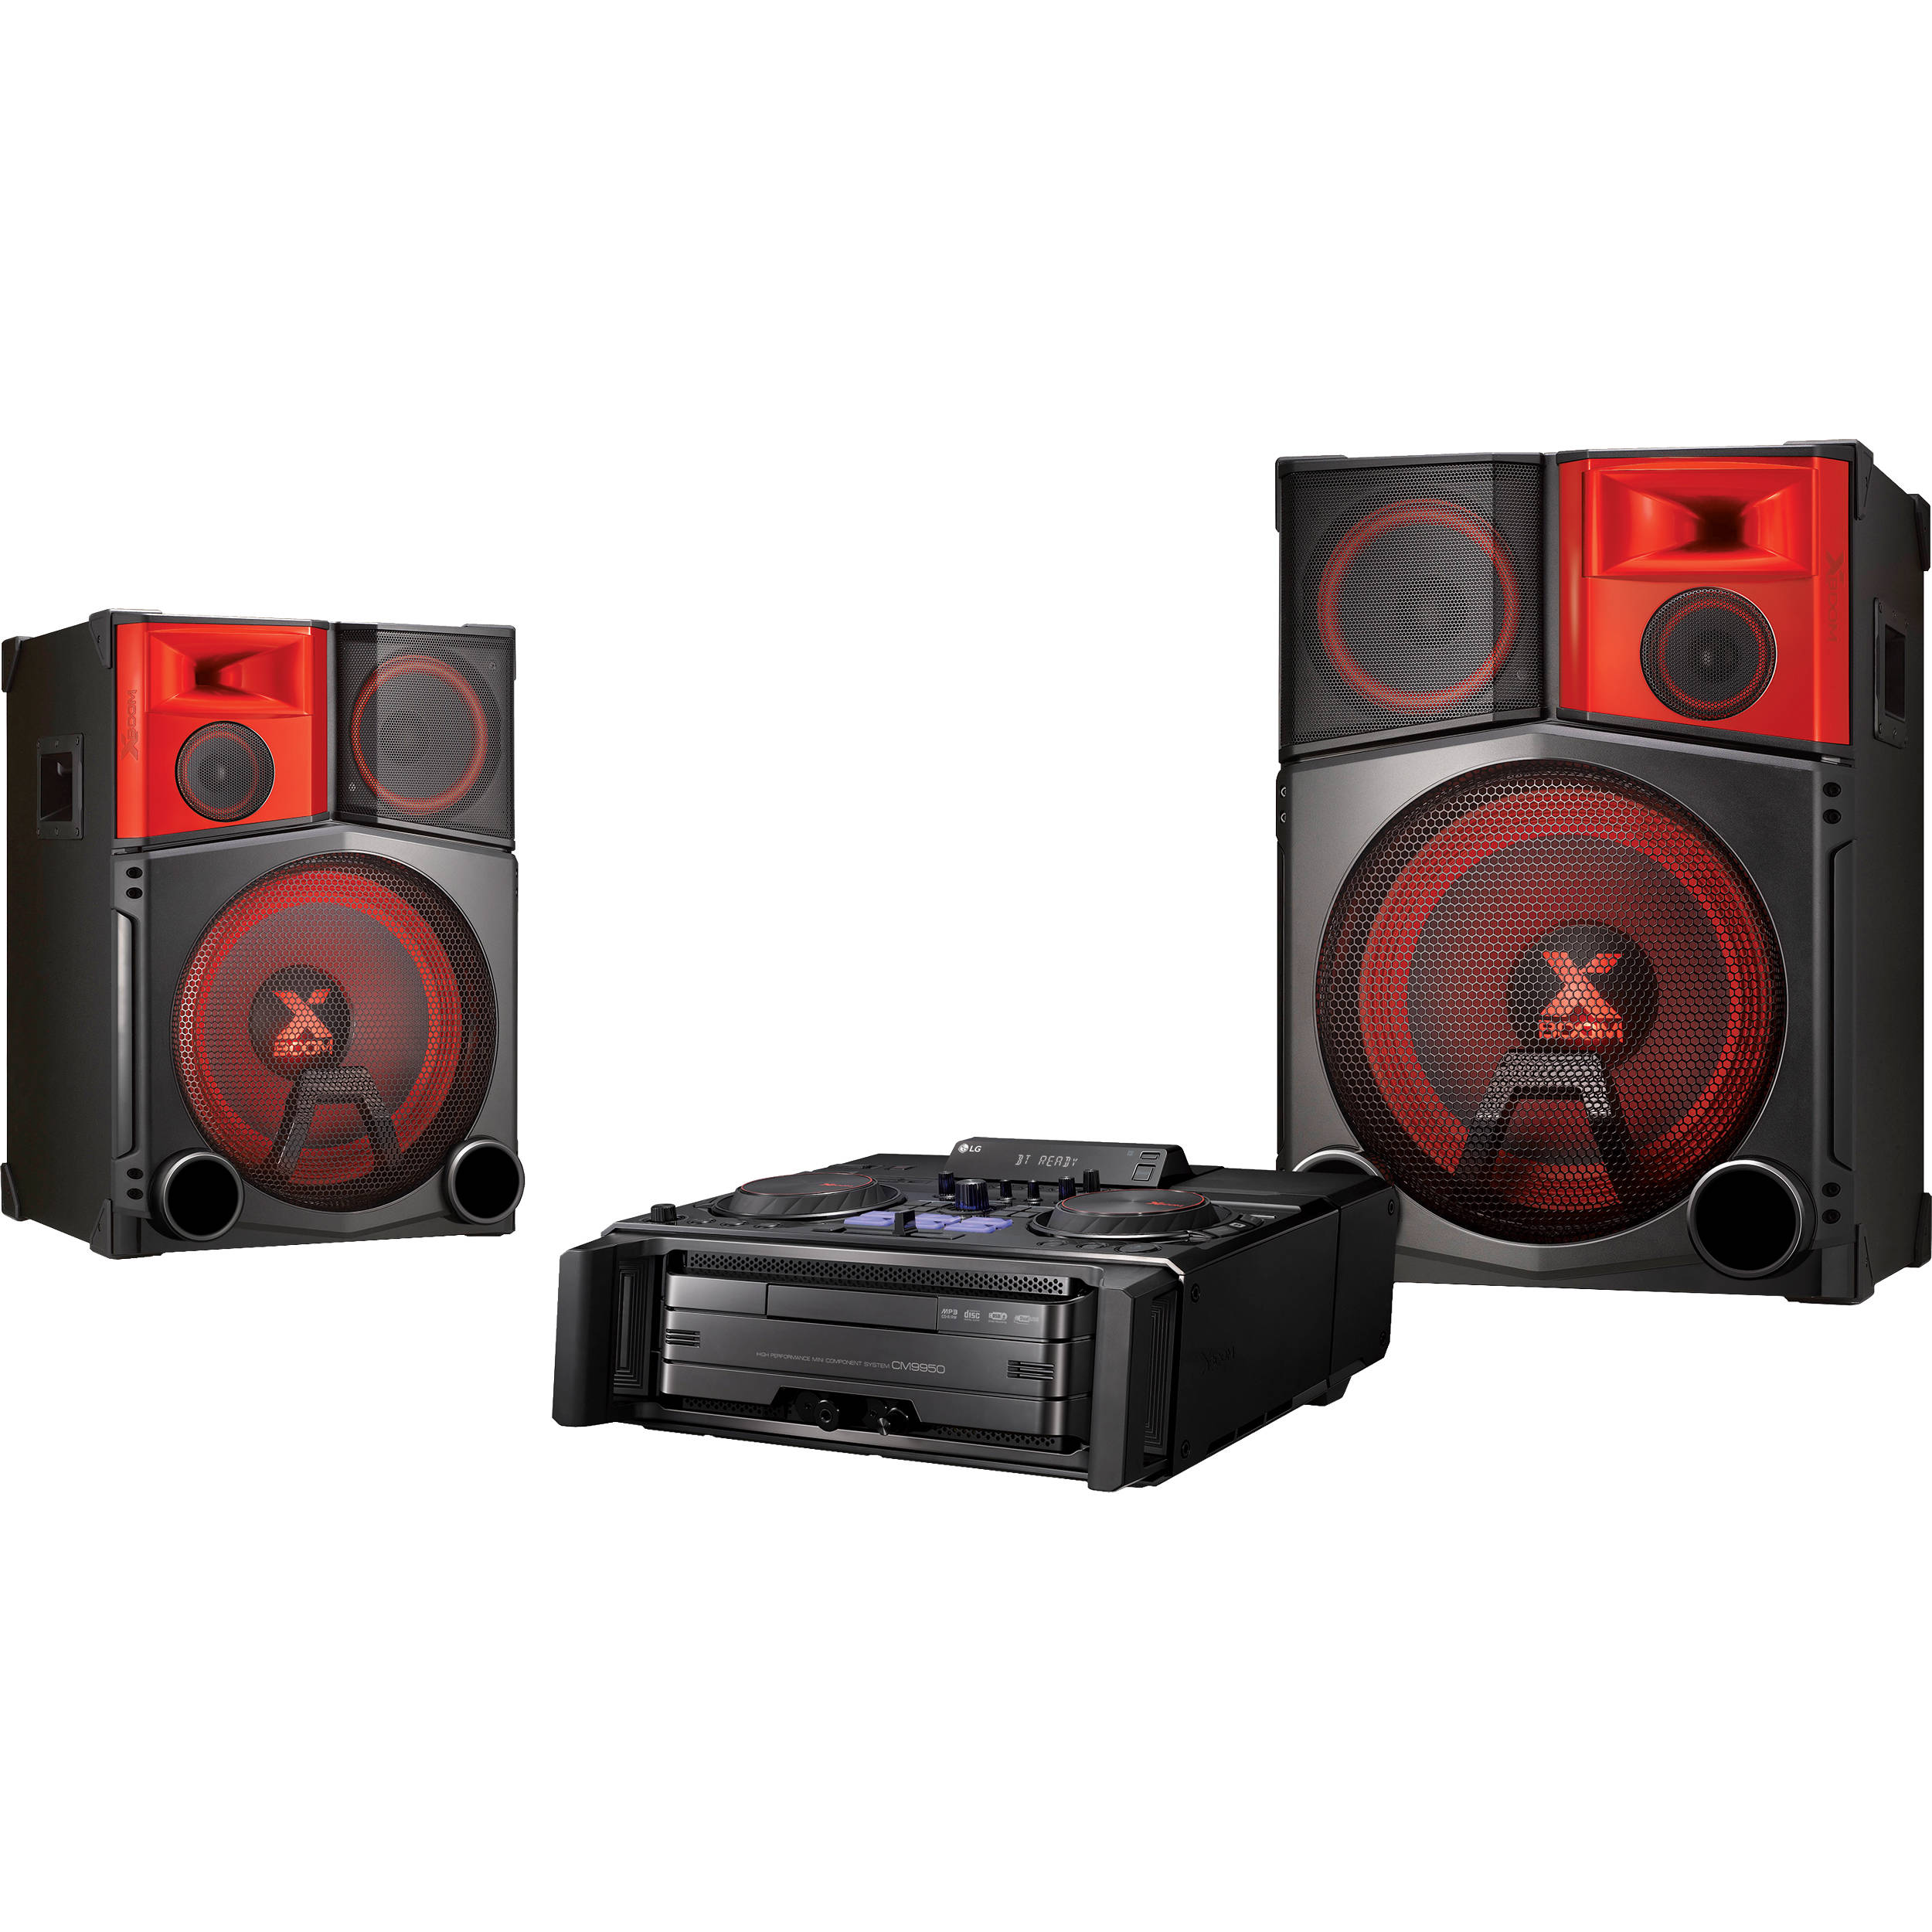 shelf index mcr en systems stereo audio visual english hifi products yamaha canada